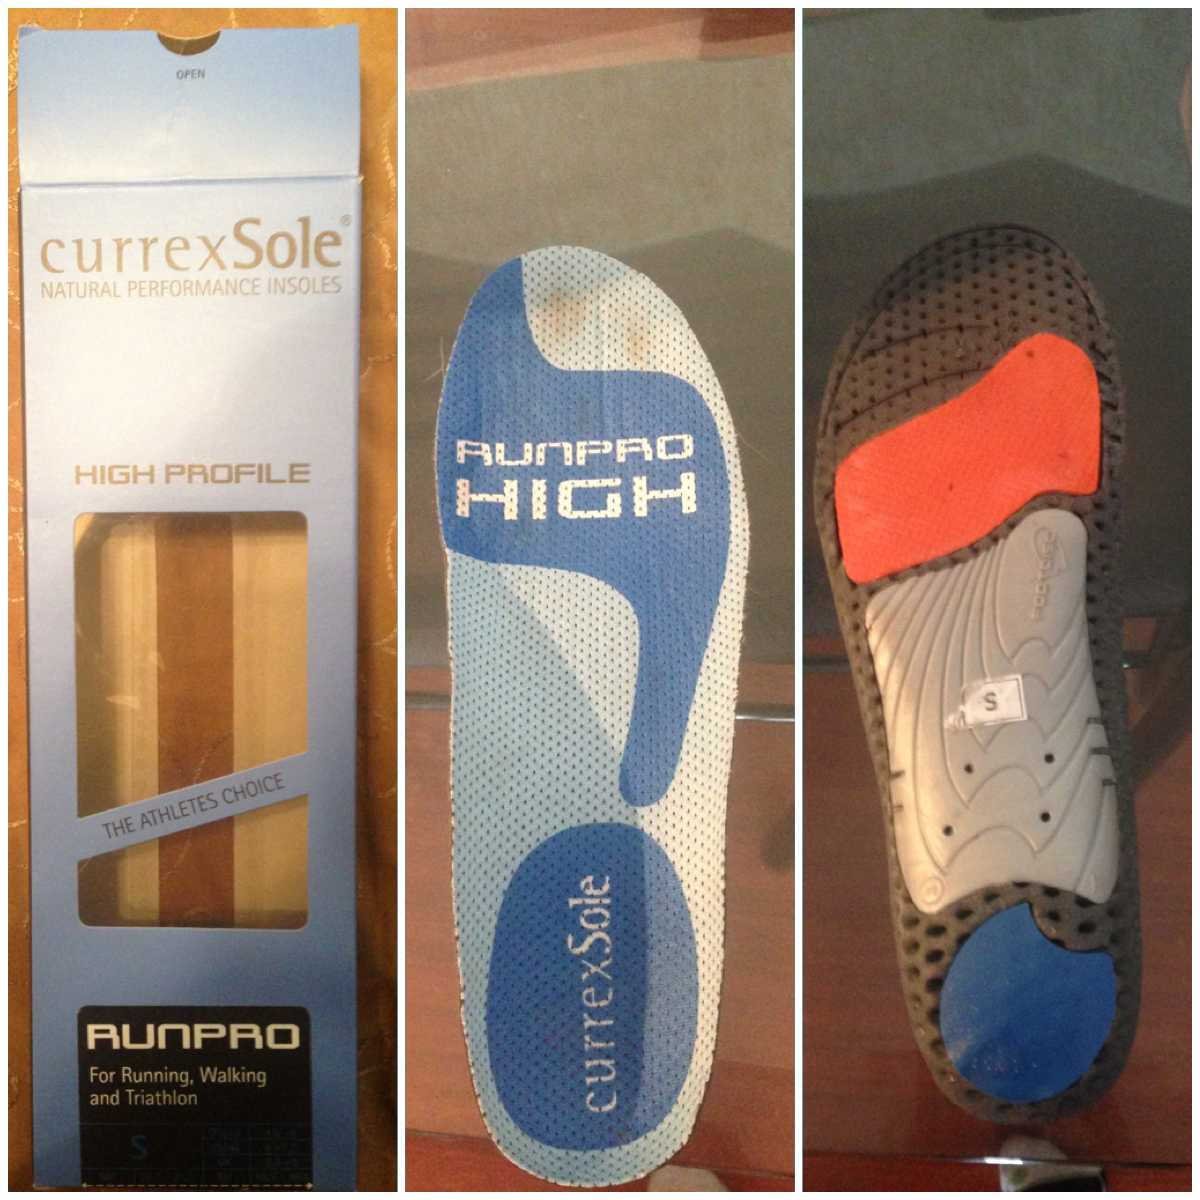 Low Medium /& High Profile available CurrexSOLE BikePro performance INSOLES